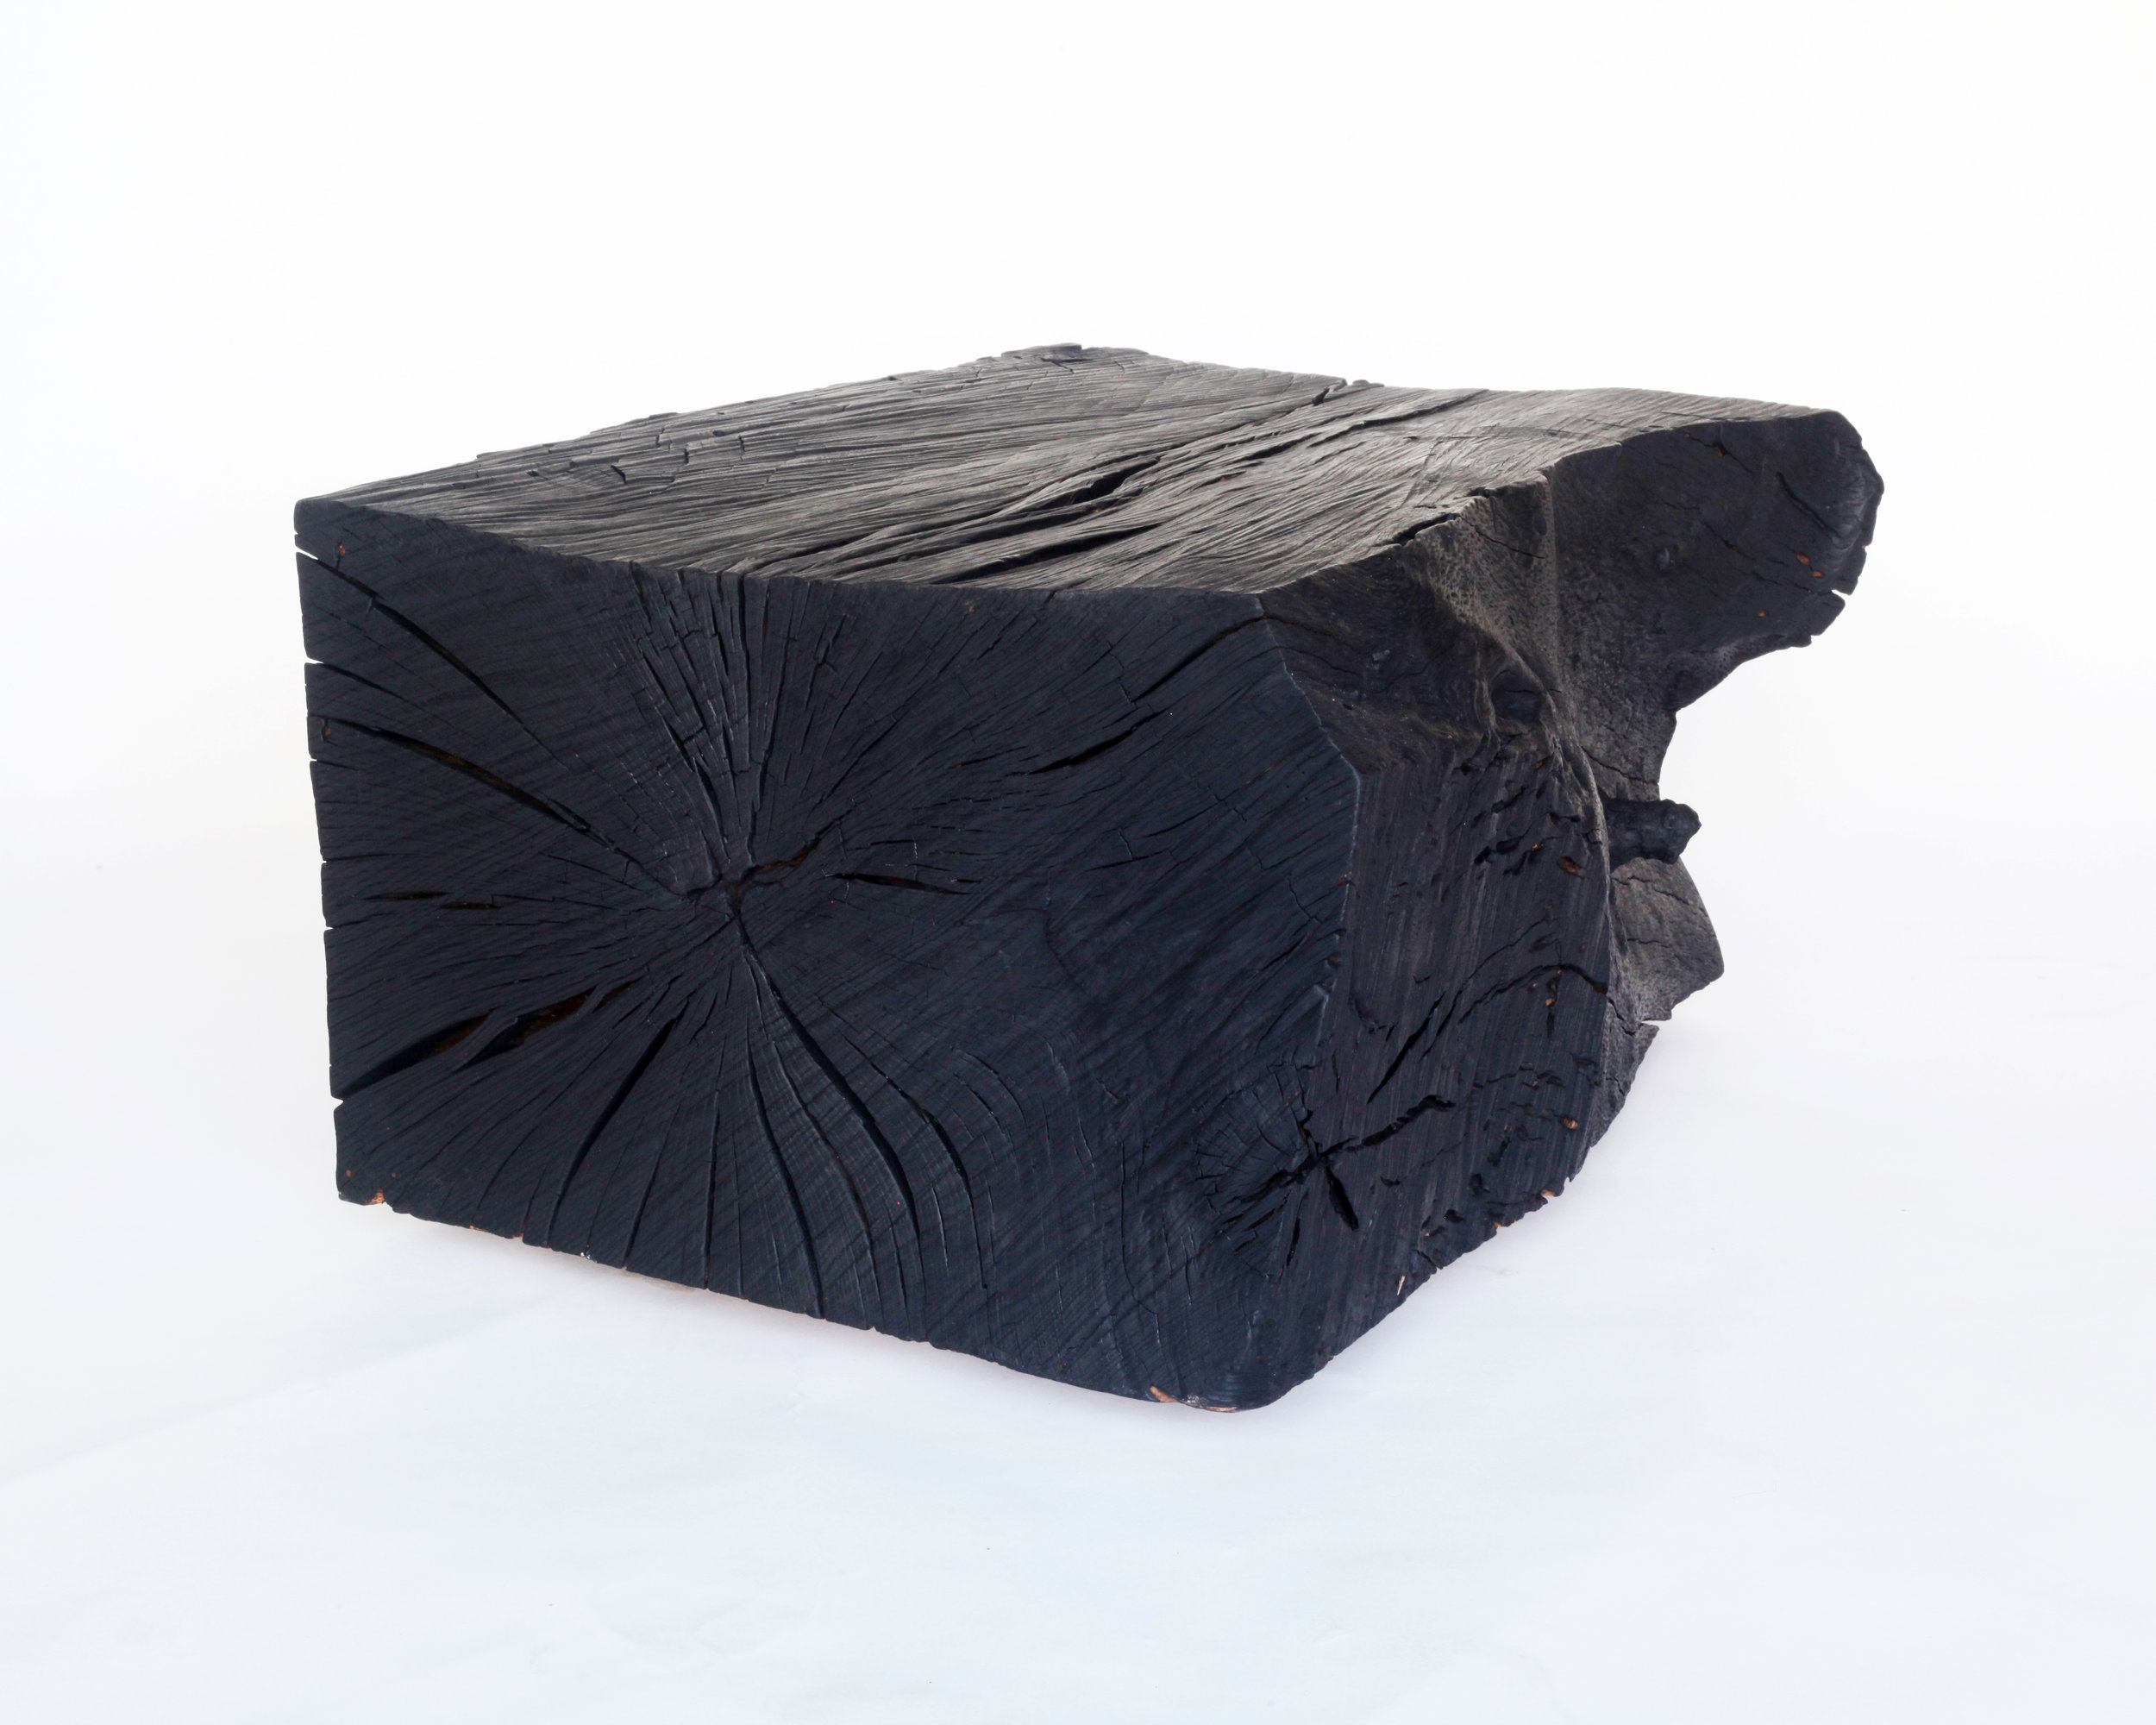 Coffee table-  Charred California live oak block